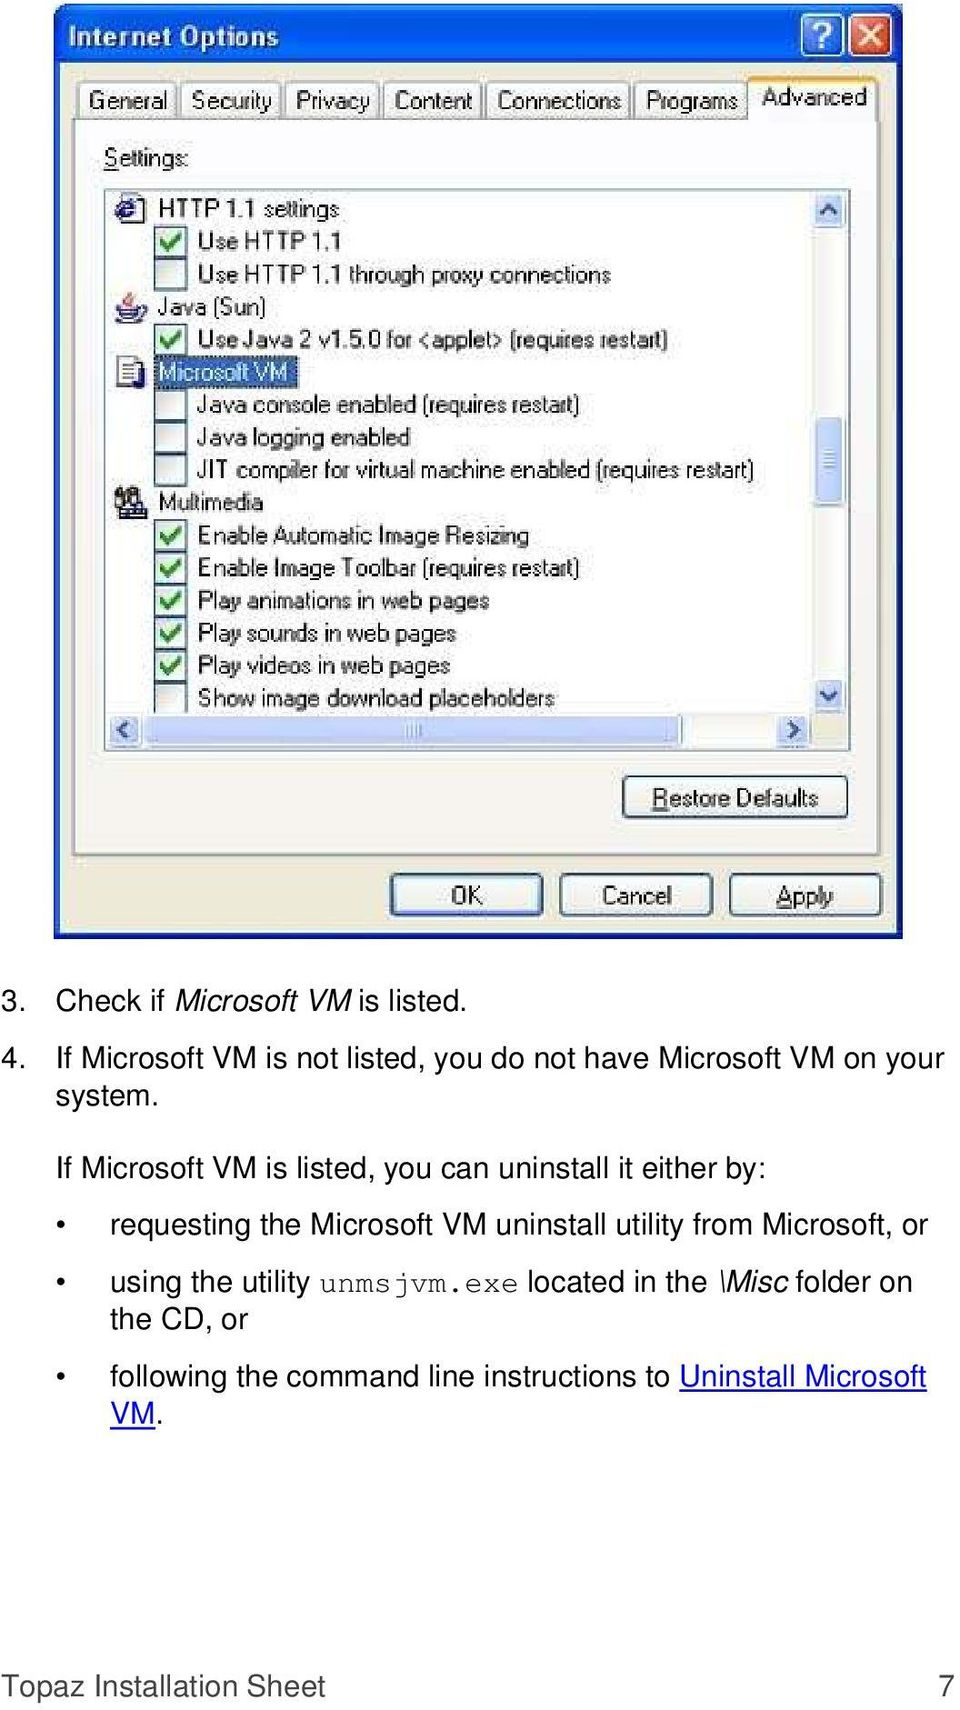 If Microsoft VM is listed, you can uninstall it either by: requesting the Microsoft VM uninstall